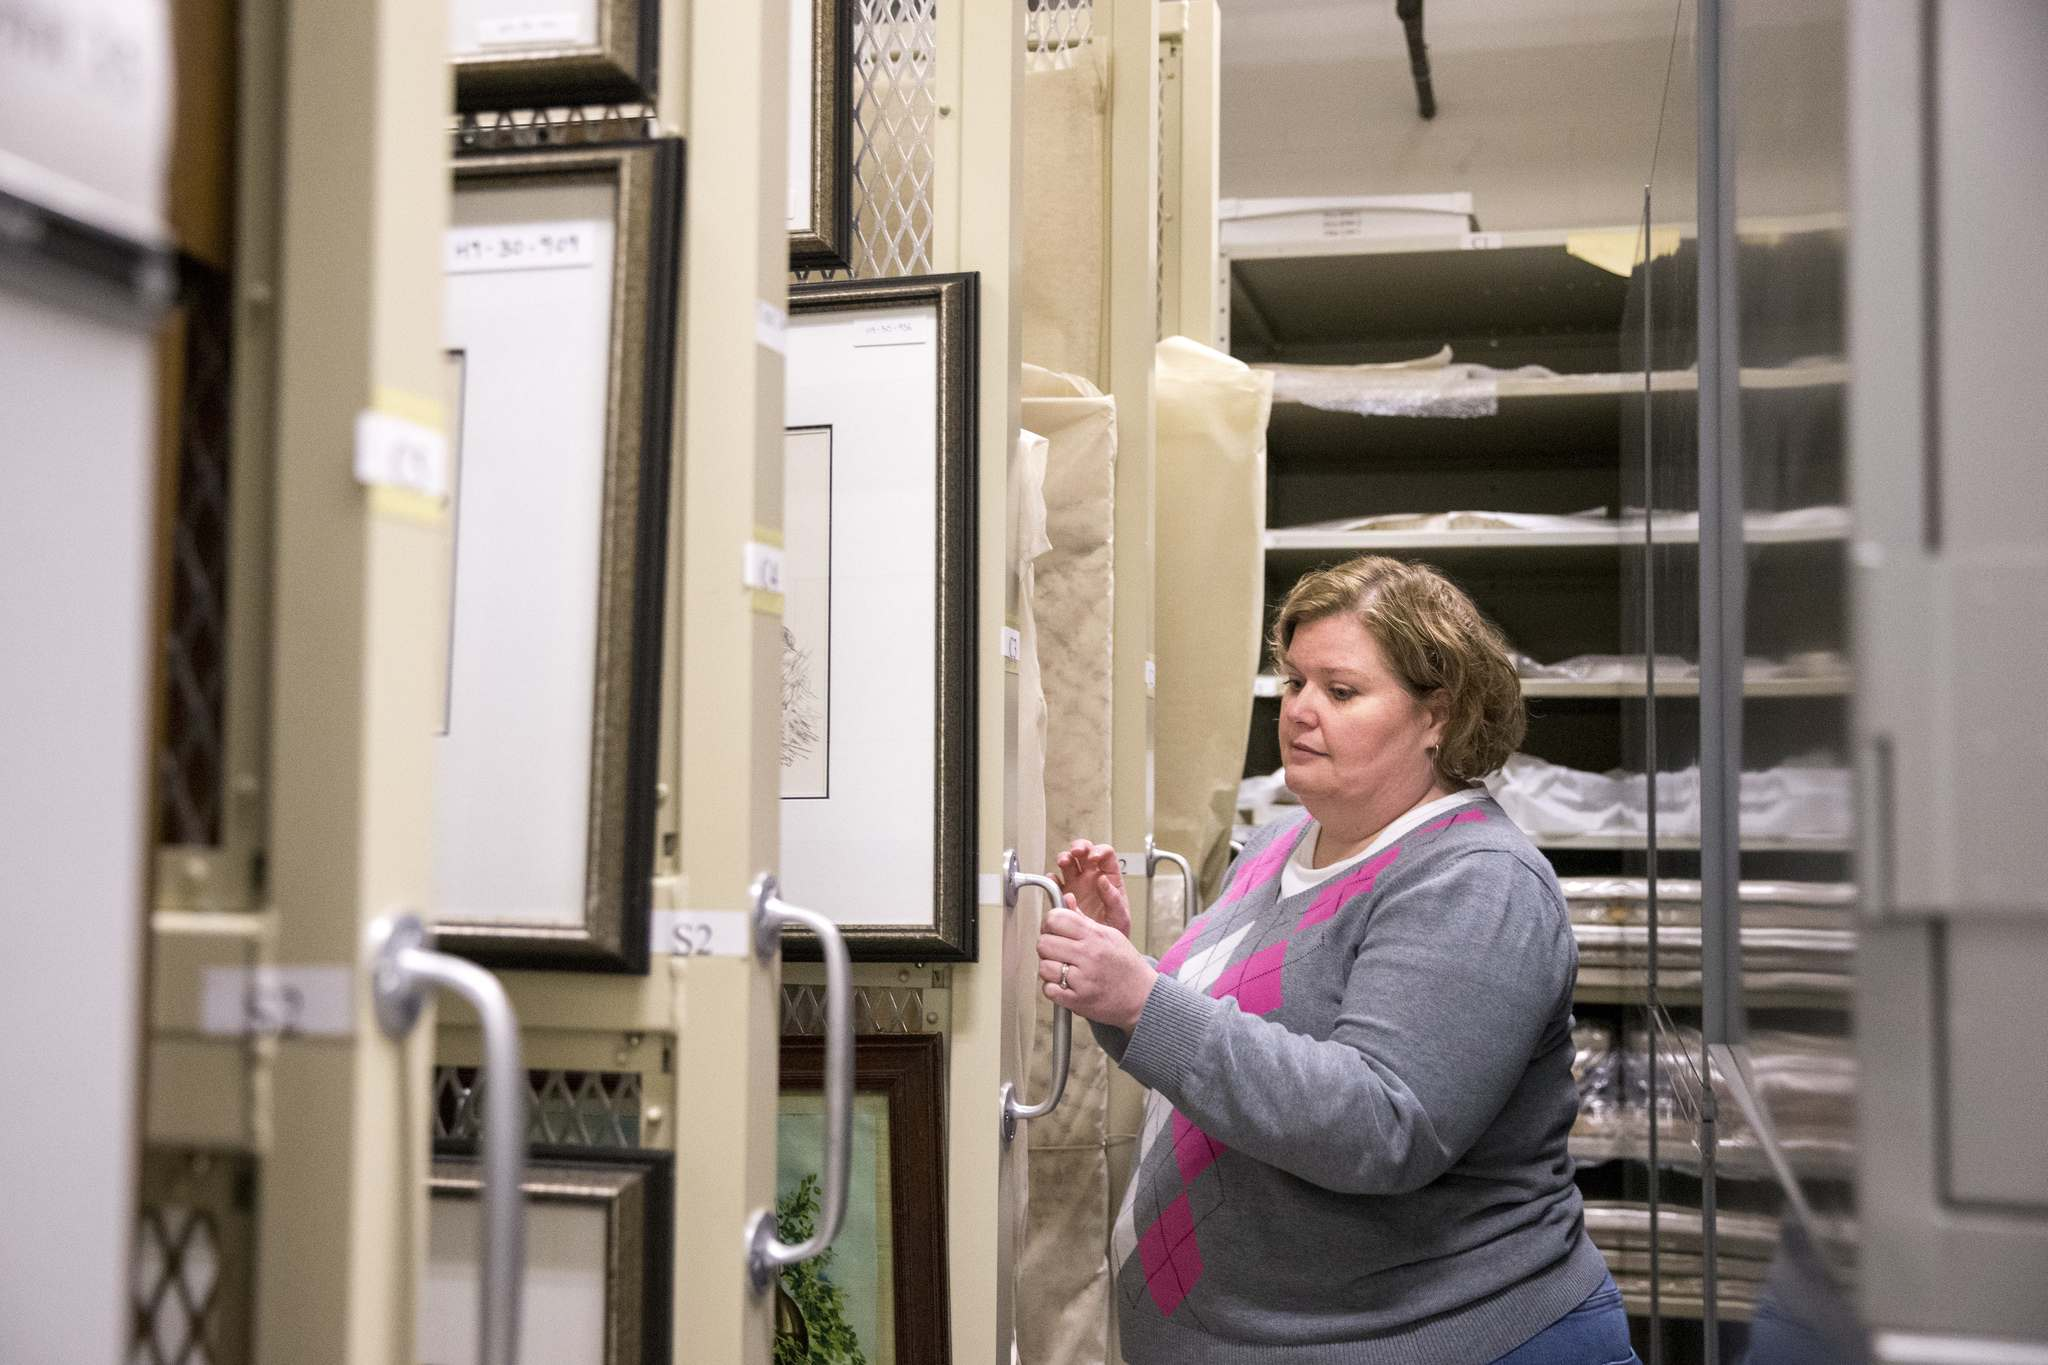 Cindy Colford, manager of collections and conservation at the Manitoba Museum, says museums have continued to collect, while budgets to care for collections haven't kept pace. (Mikaela MacKenzie / Winnipeg Free Press)